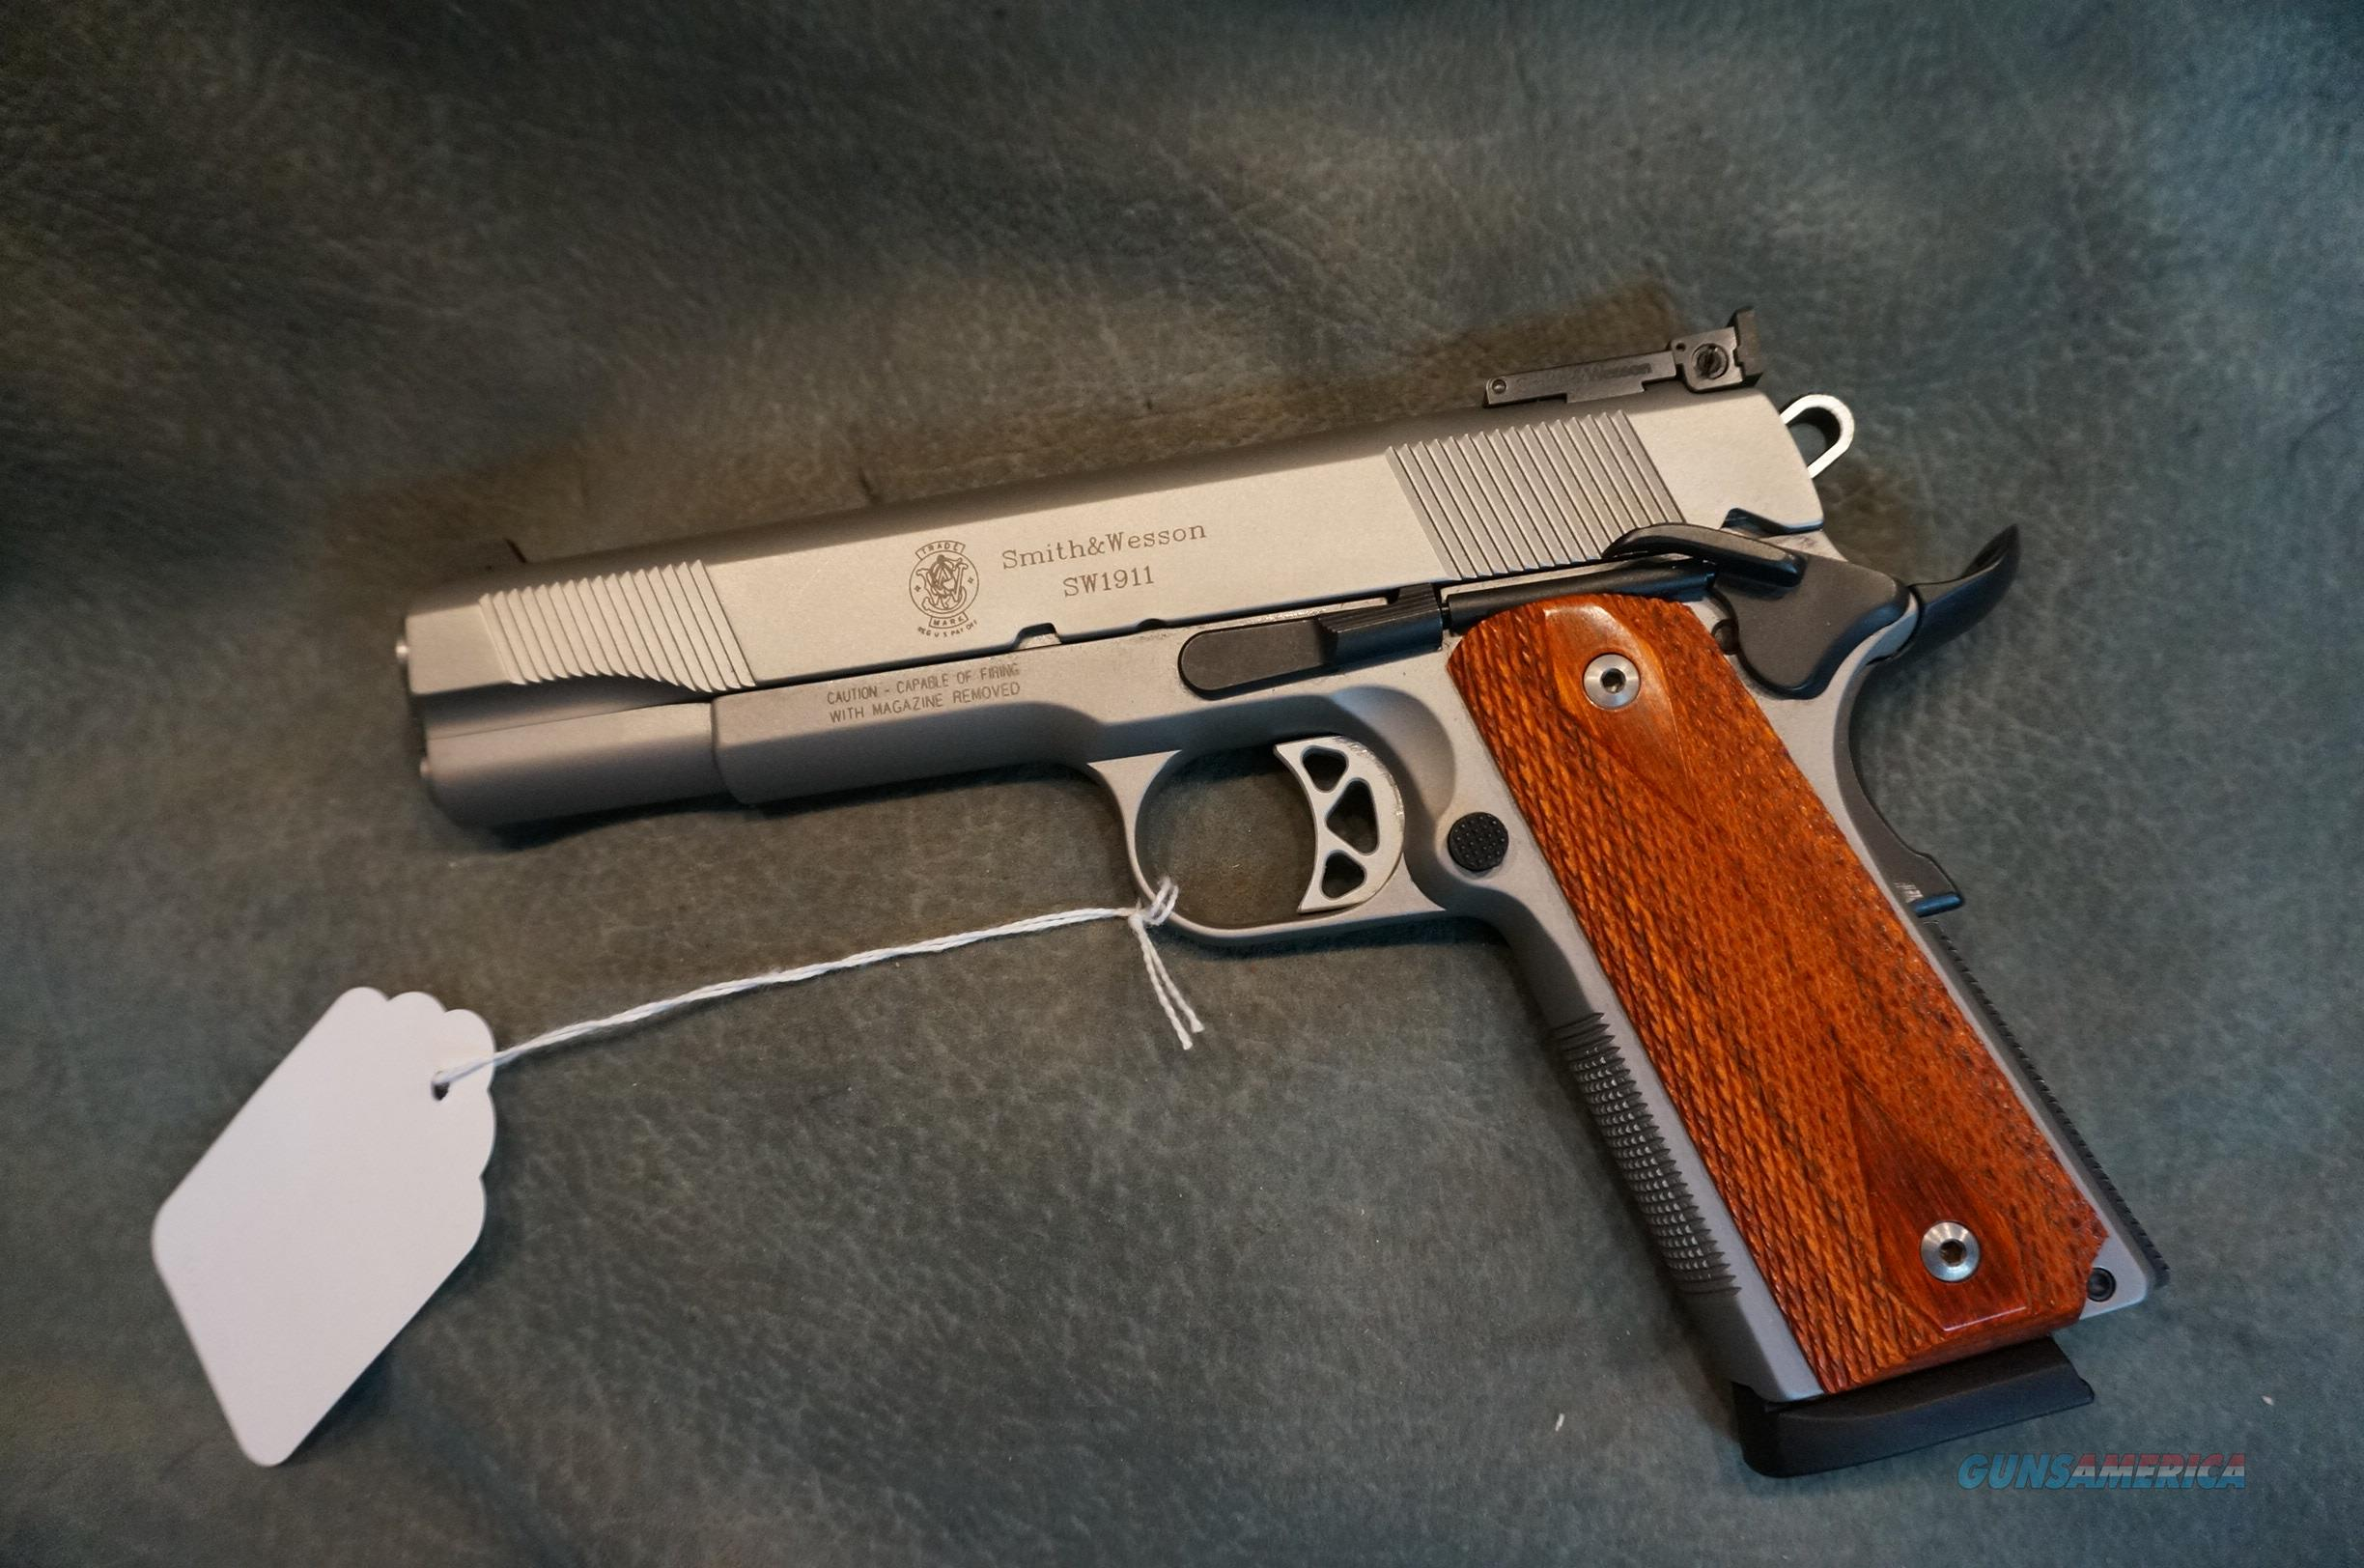 S+W 1911 45ACP Stainless Target  Guns > Pistols > Smith & Wesson Pistols - Autos > Steel Frame